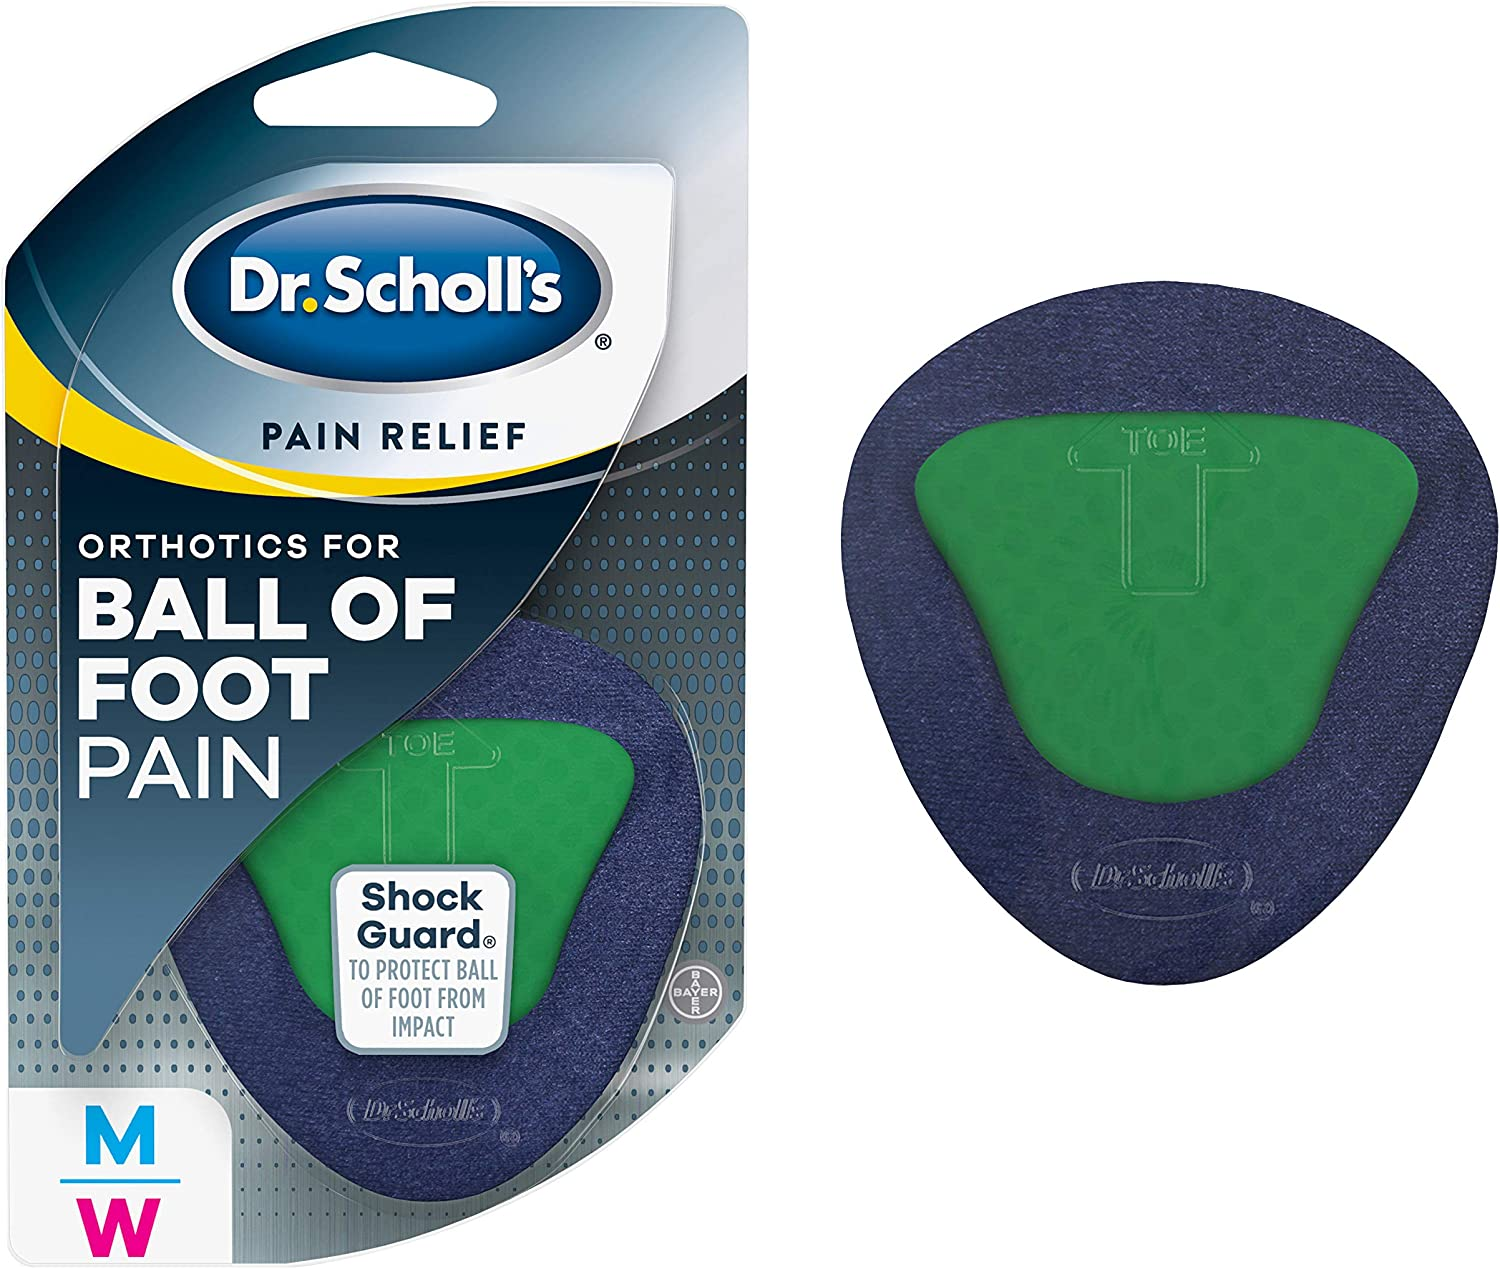 Dr. Scholl's BALL OF FOOT Pain Relief Orthotics (One Size) // Clinically Proven Immediate and All-Day Relief of Ball-of-Foot Pain by Lifting and Reducing Pressure on Metatarsal Bones